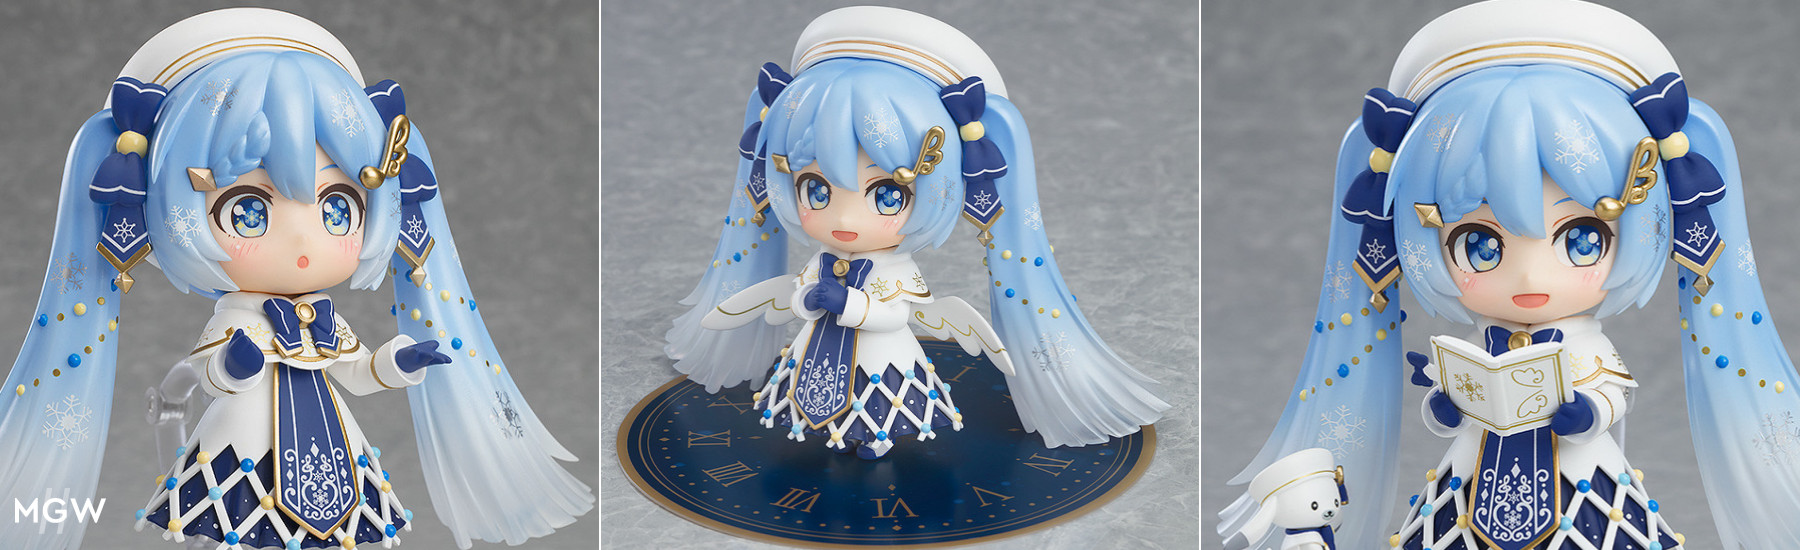 Nendoroid Snow Miku Glowing Snow Ver. by Good Smile Company MyGrailWatch Anime Figure Guide